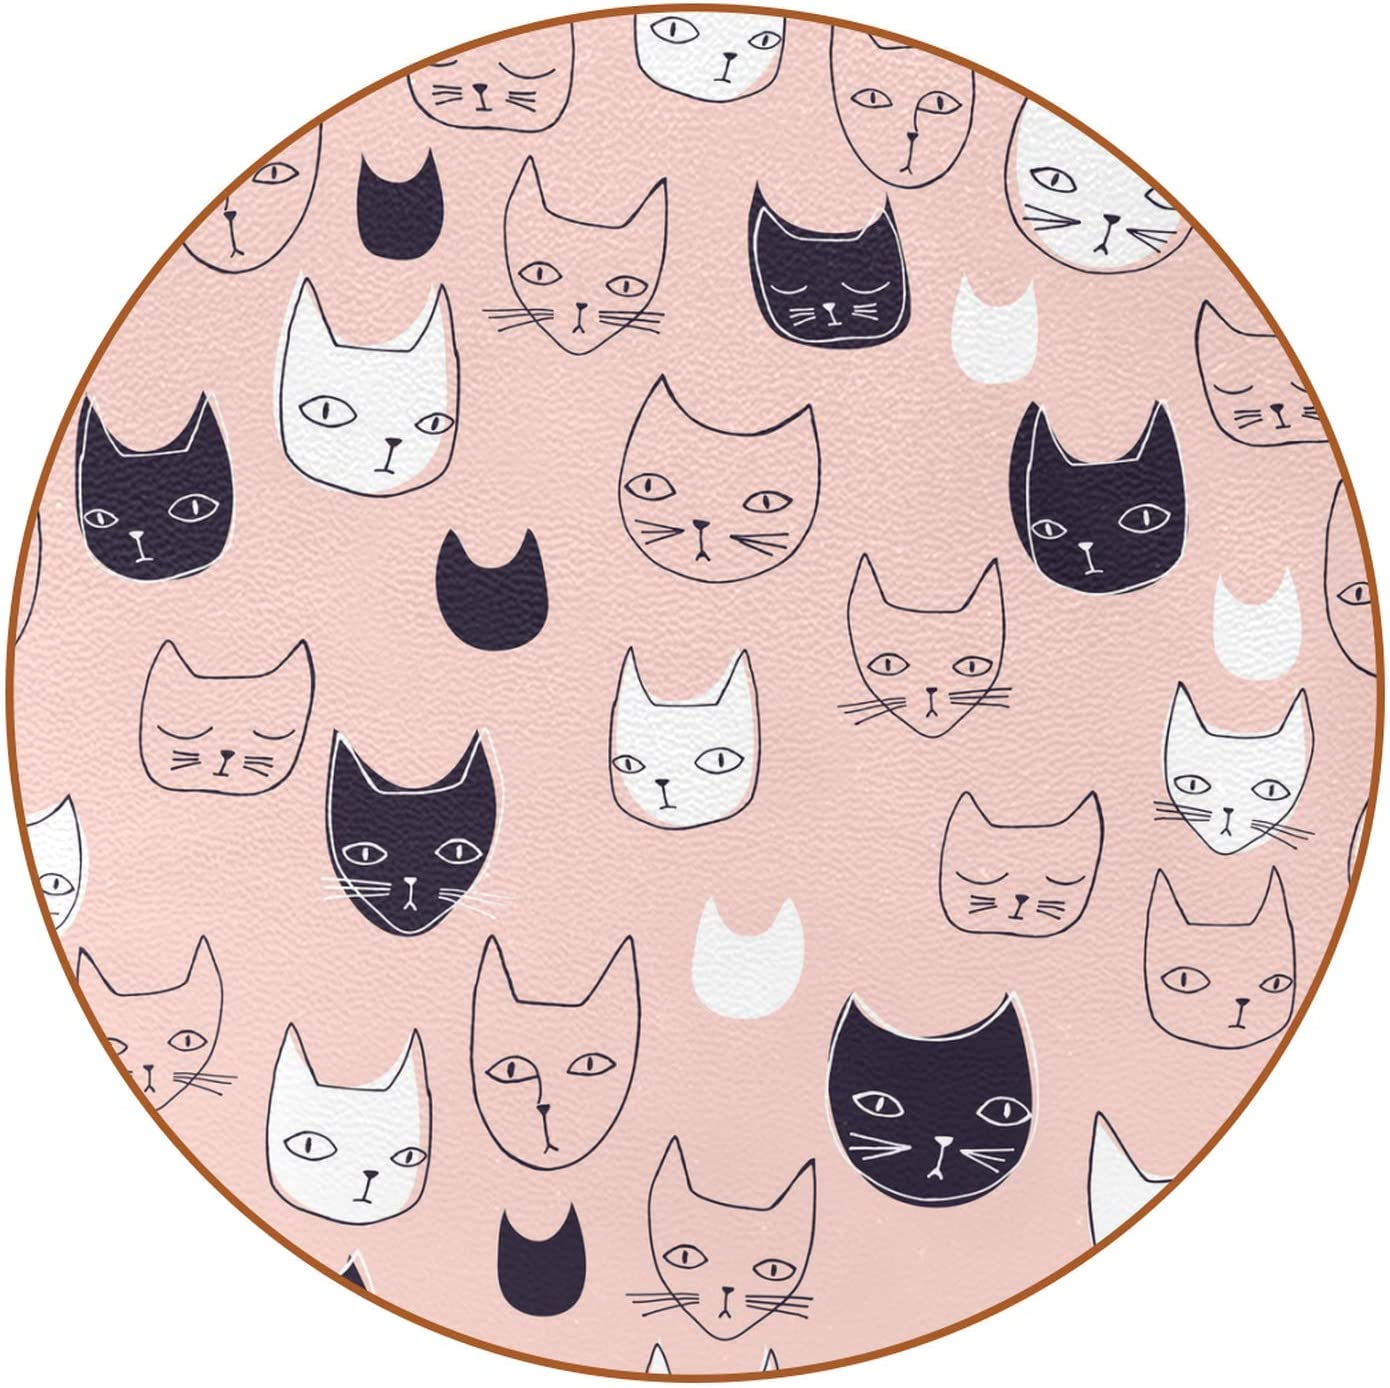 Coasters for Drinks Absorbent Leather Coasters Cartoon Cats Head Housewarming Gifts for New Home Present for Friends, Living Room Decor, Apartment Decor 4.3 Inch